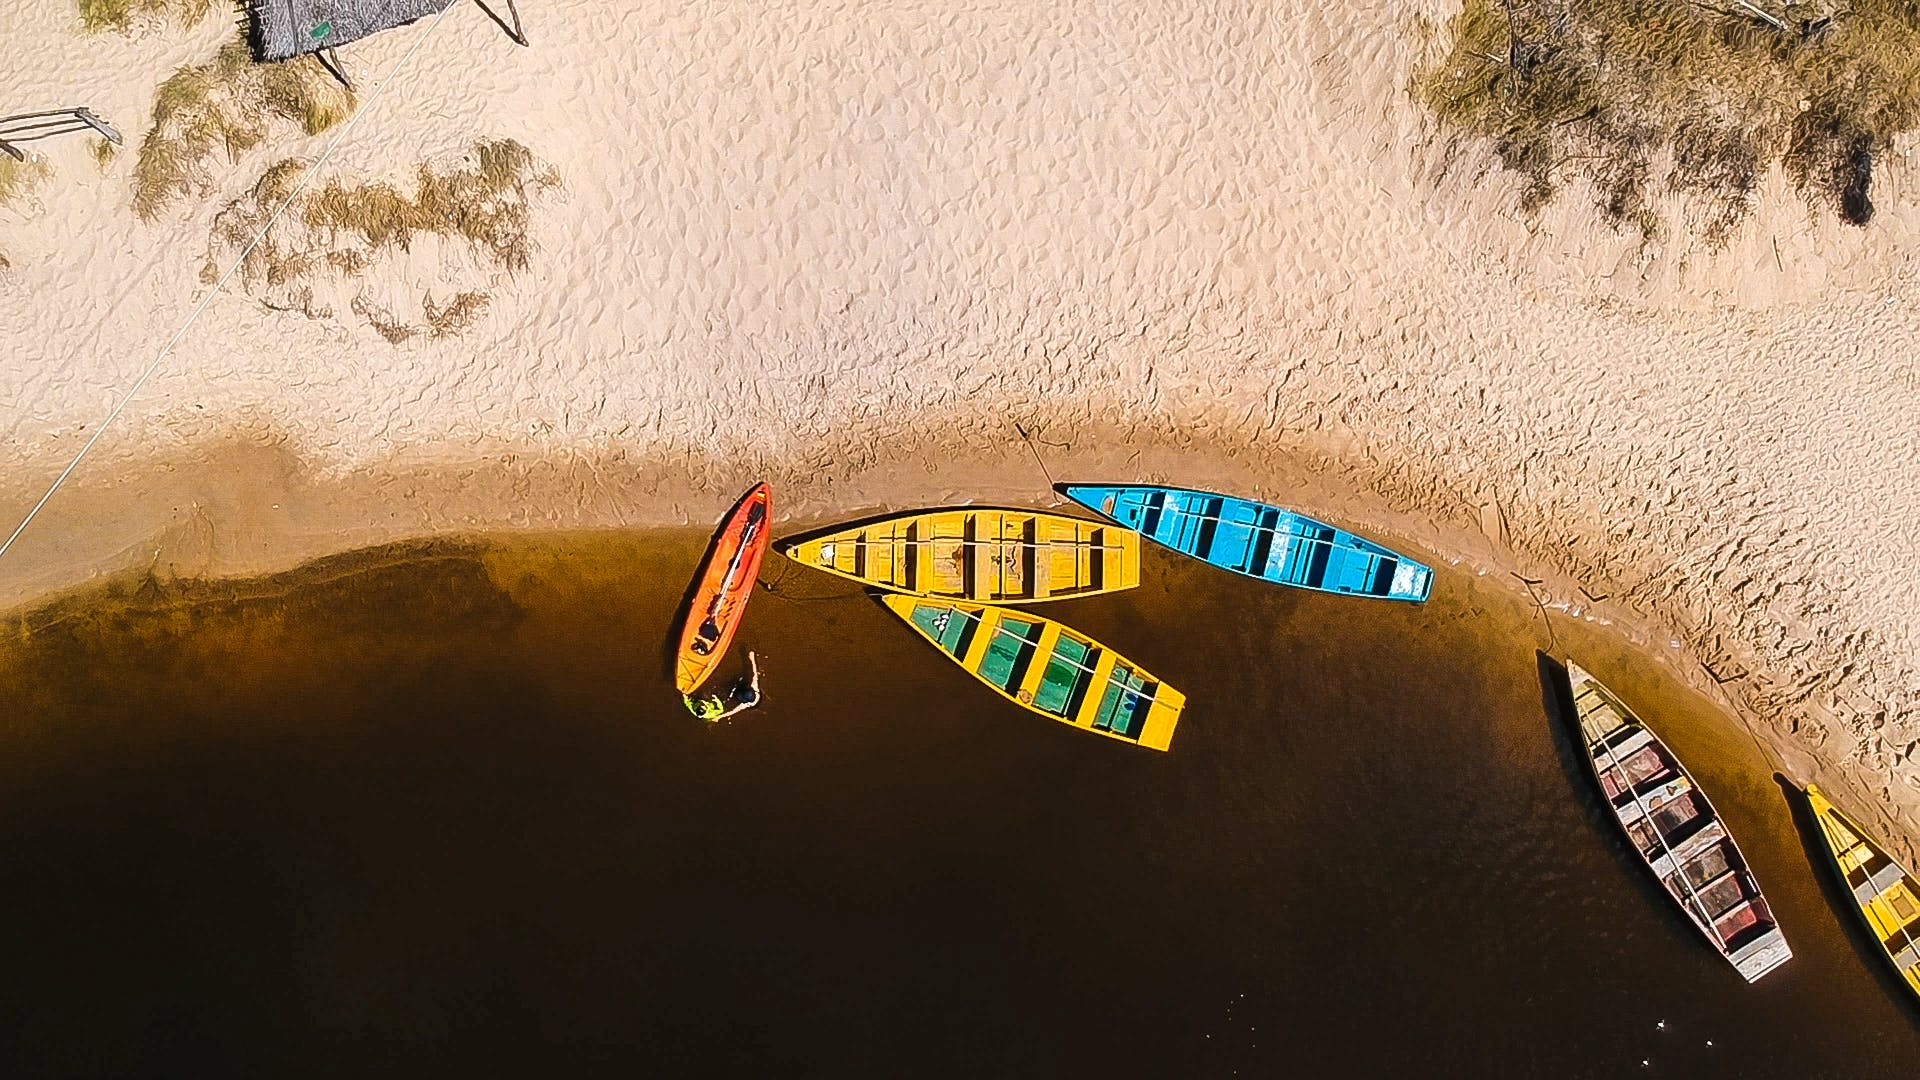 Top View of Assorted-colored Row Boats · Free Stock Photo